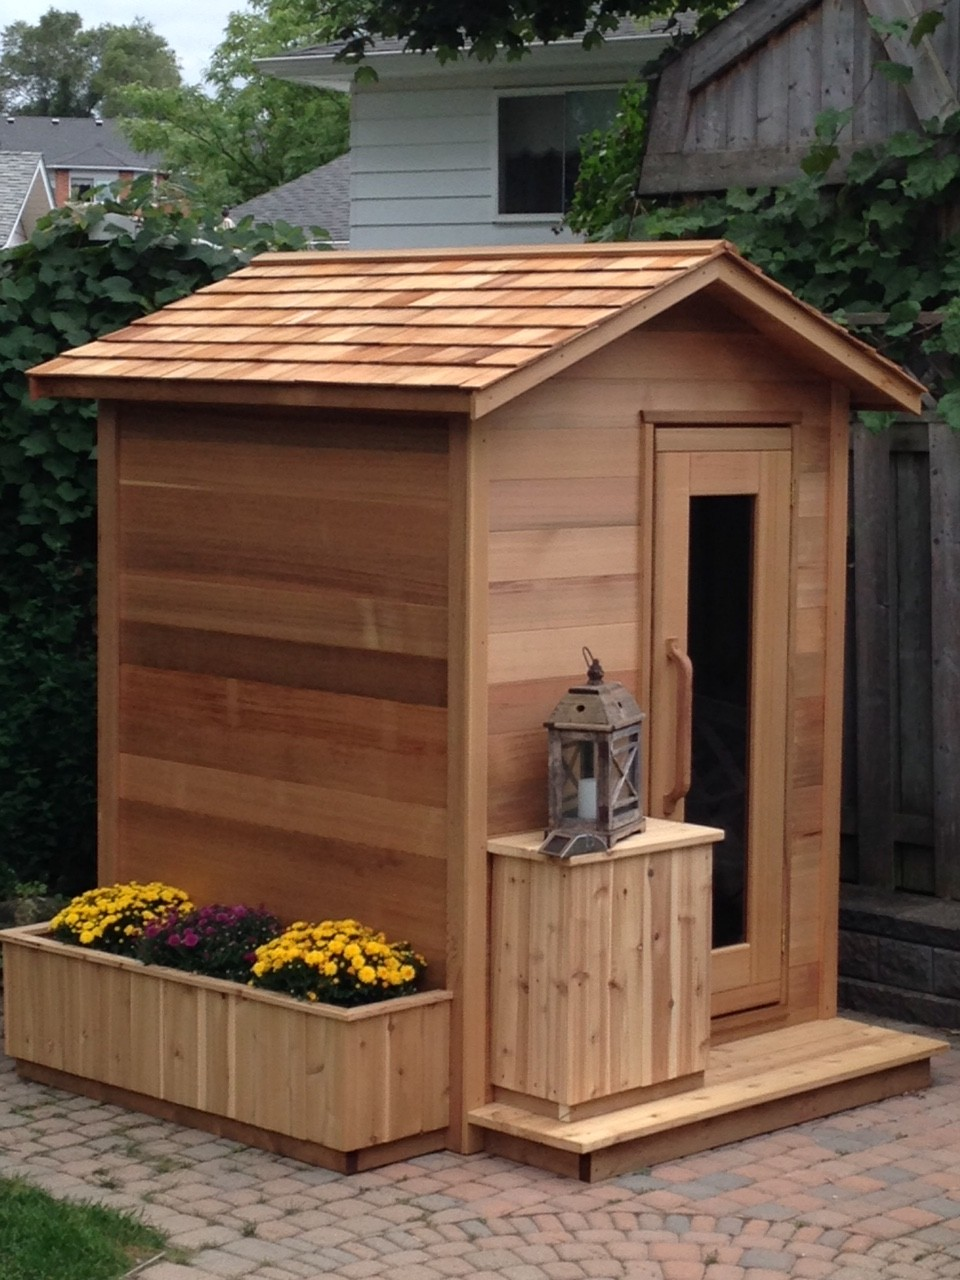 Backyard Sauna Plans outdoor red cedar cabin sauna 6x4 | dundalk | canada barrel saunas